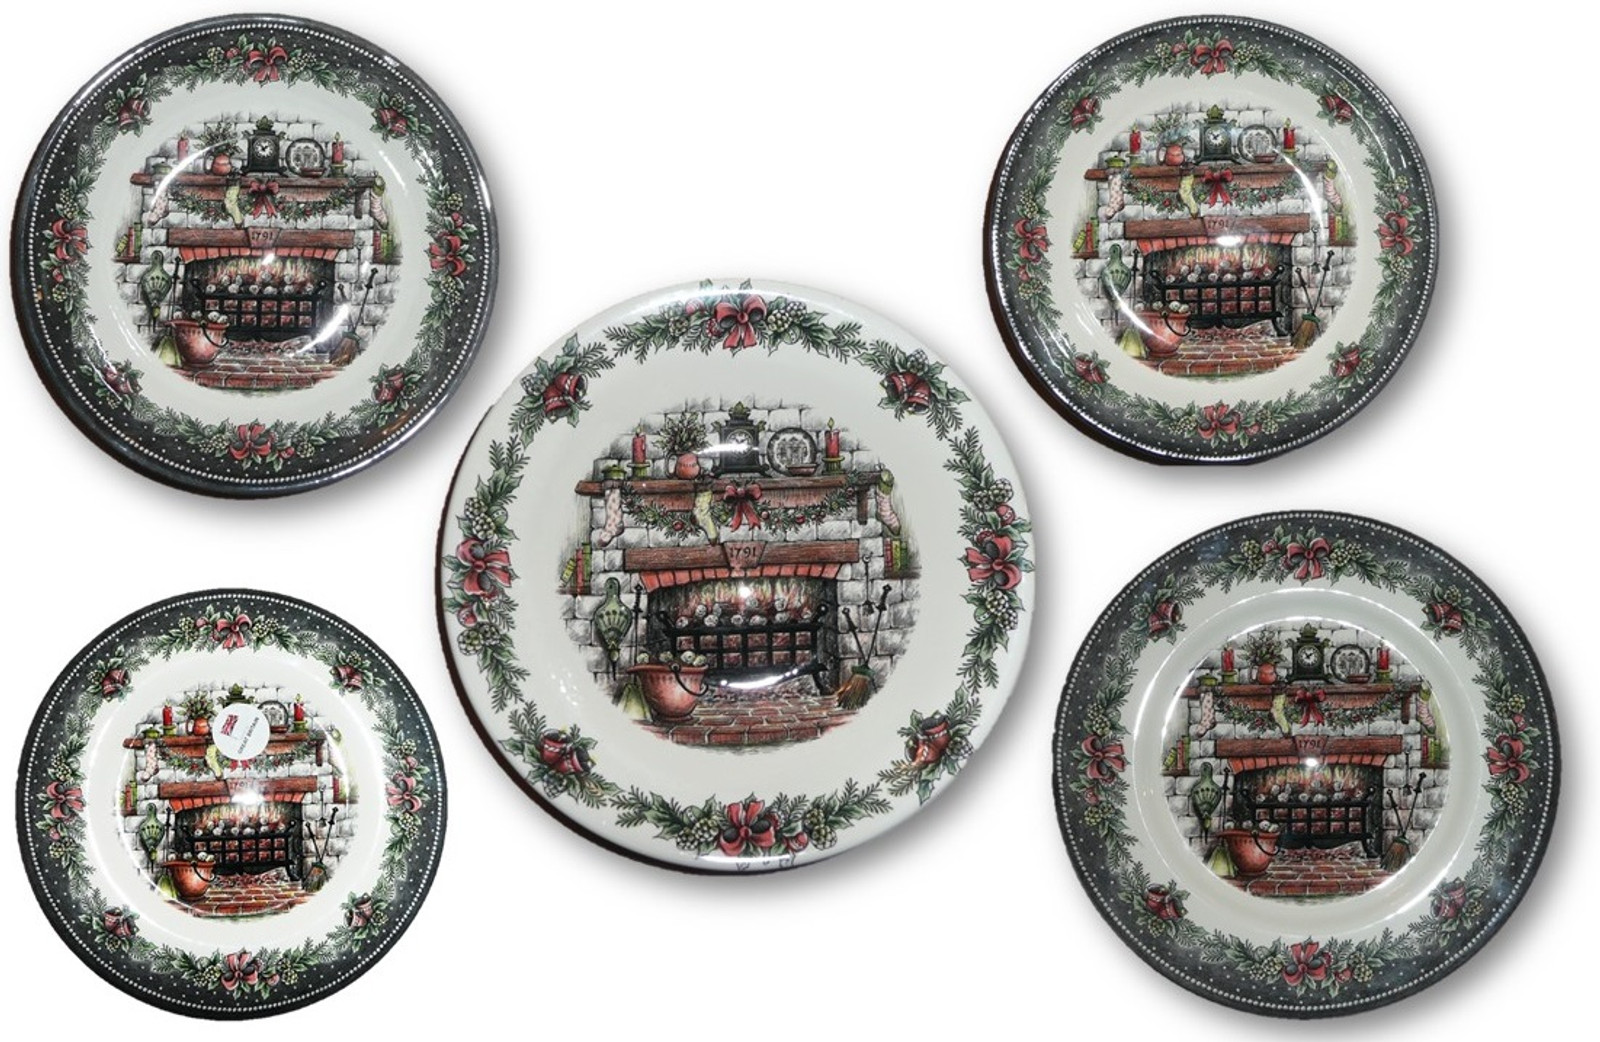 Christmas Dinnerware.Pottery Plates And Bowls Fireplace Base Christmas Dinnerware Set Of 5 Dishes